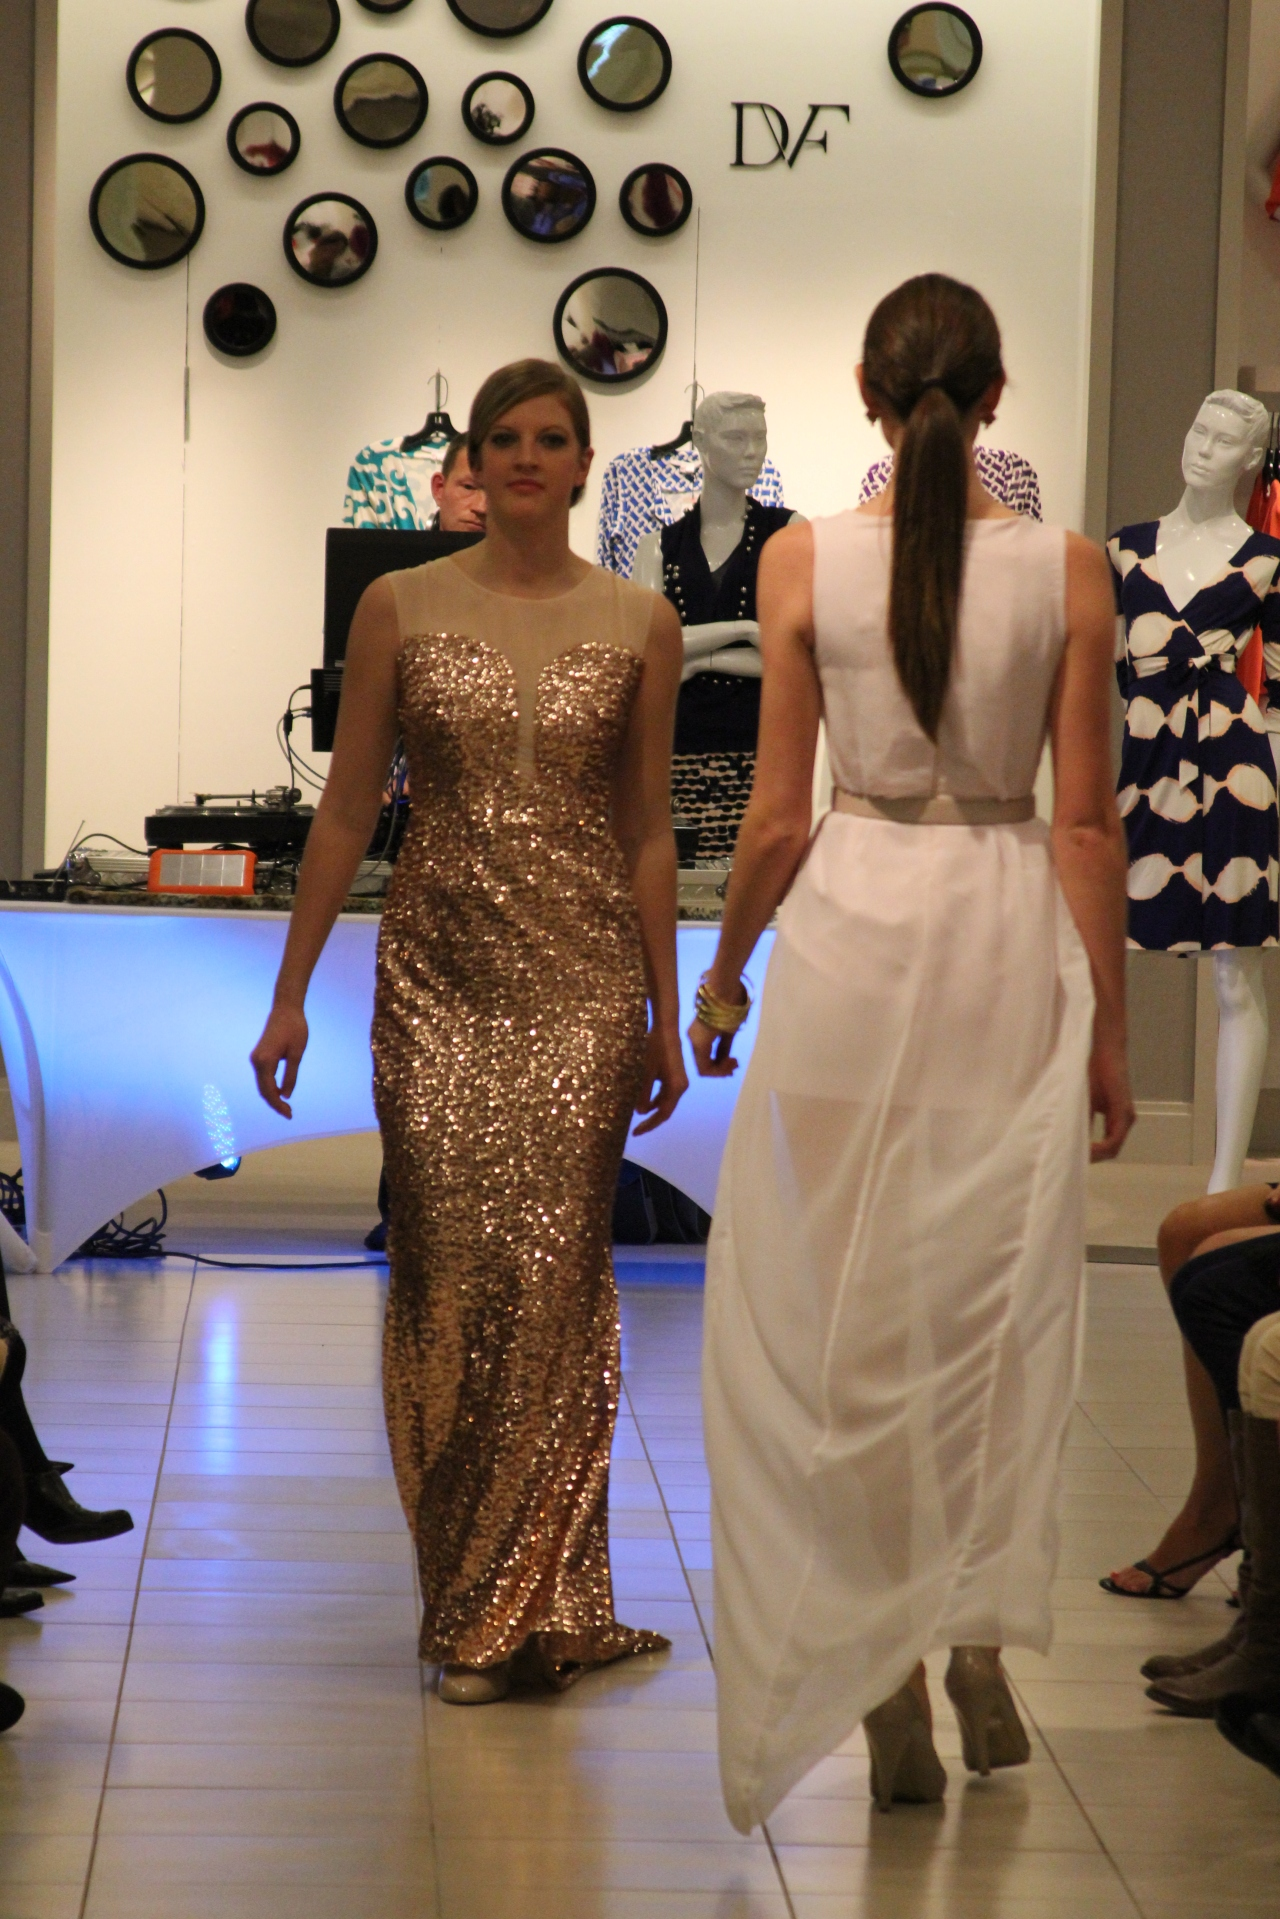 Megan Kaple's designs walking the runway at the Sak's Emerging Designer Reveal. I am in love with both frocks!